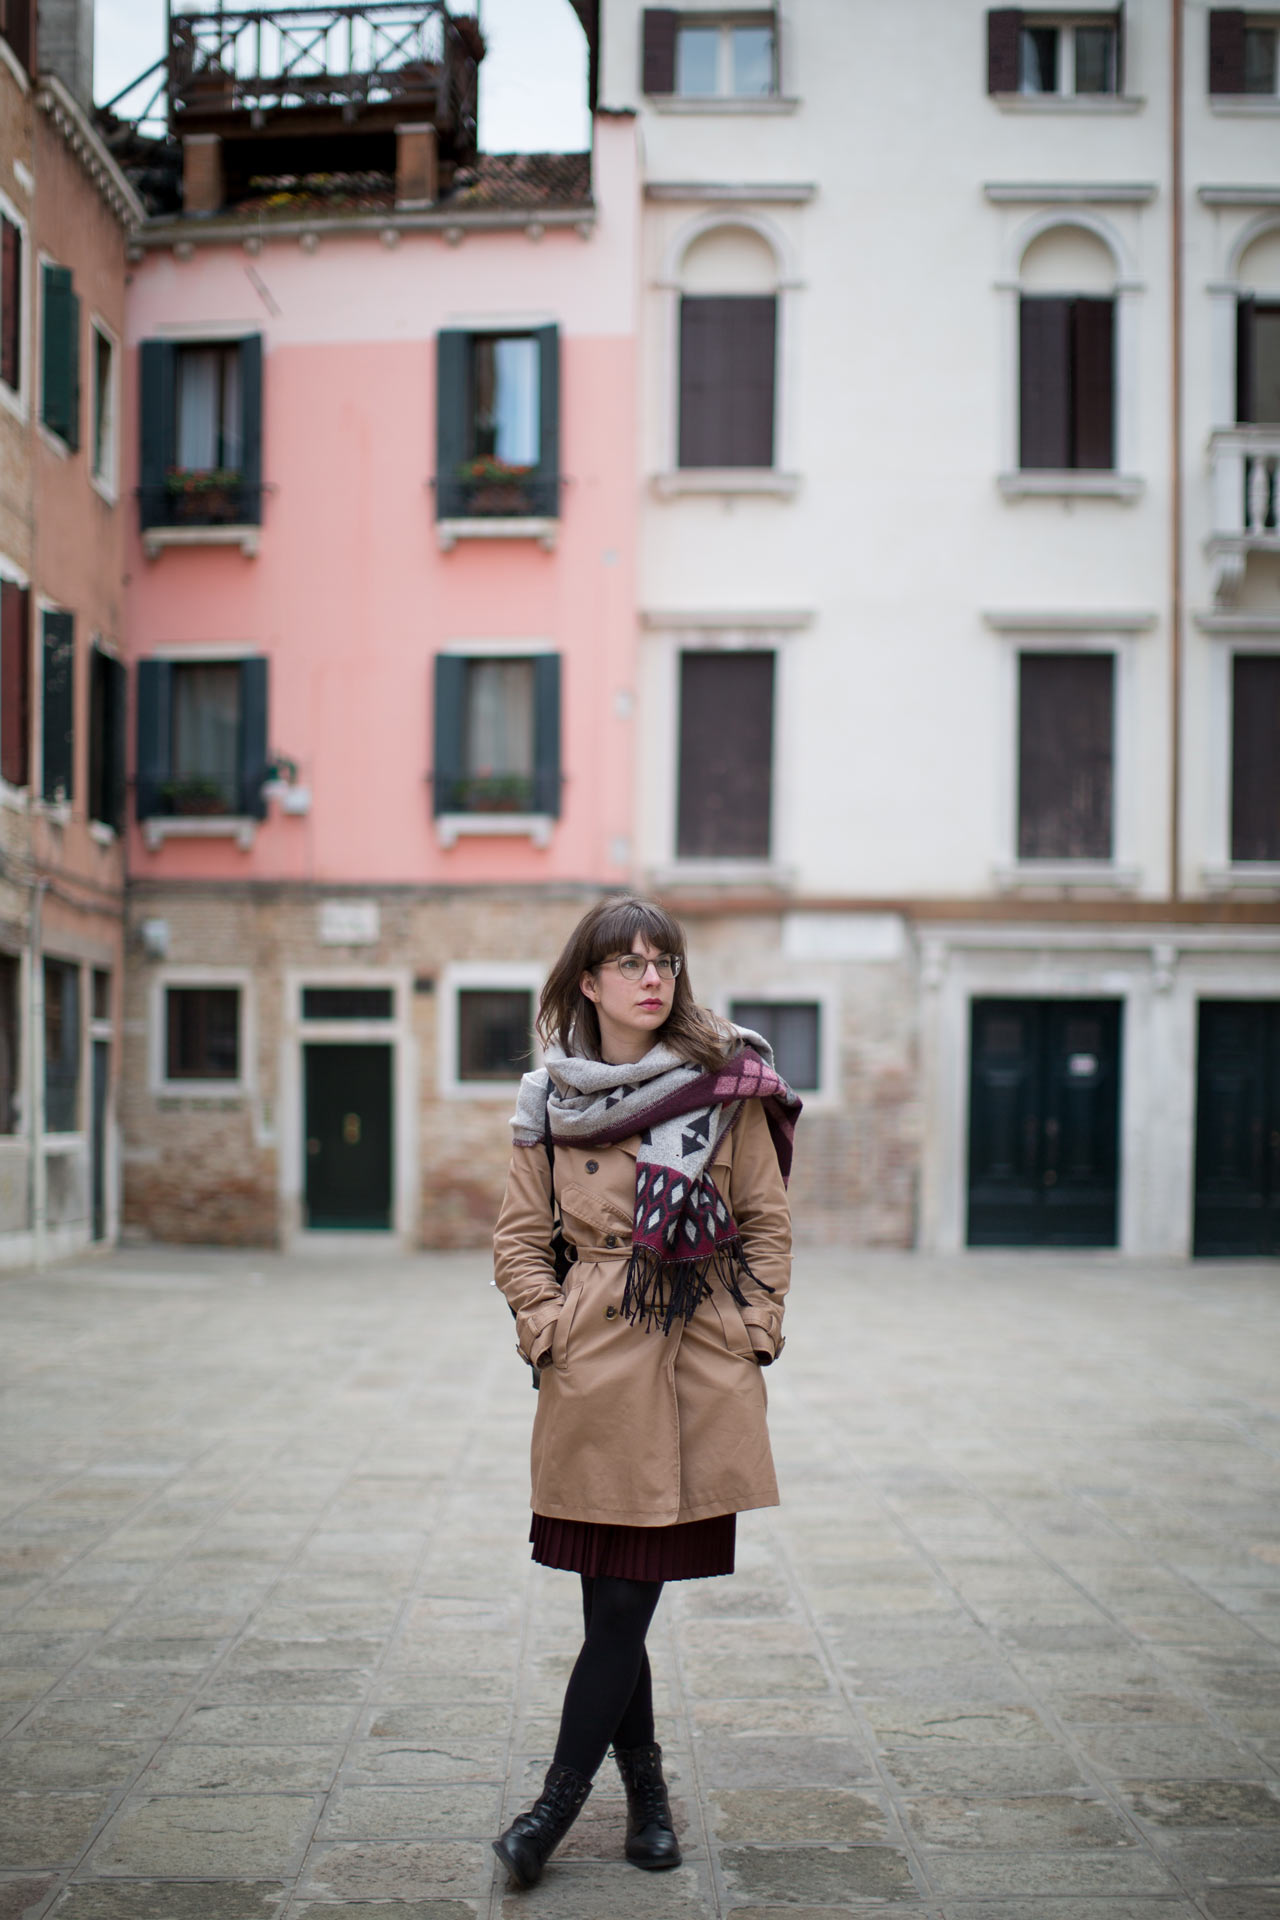 San-Polo-Campiello-Albrizzi-Carina-portrait-photo-shooting-sunset-Venezia-Venice